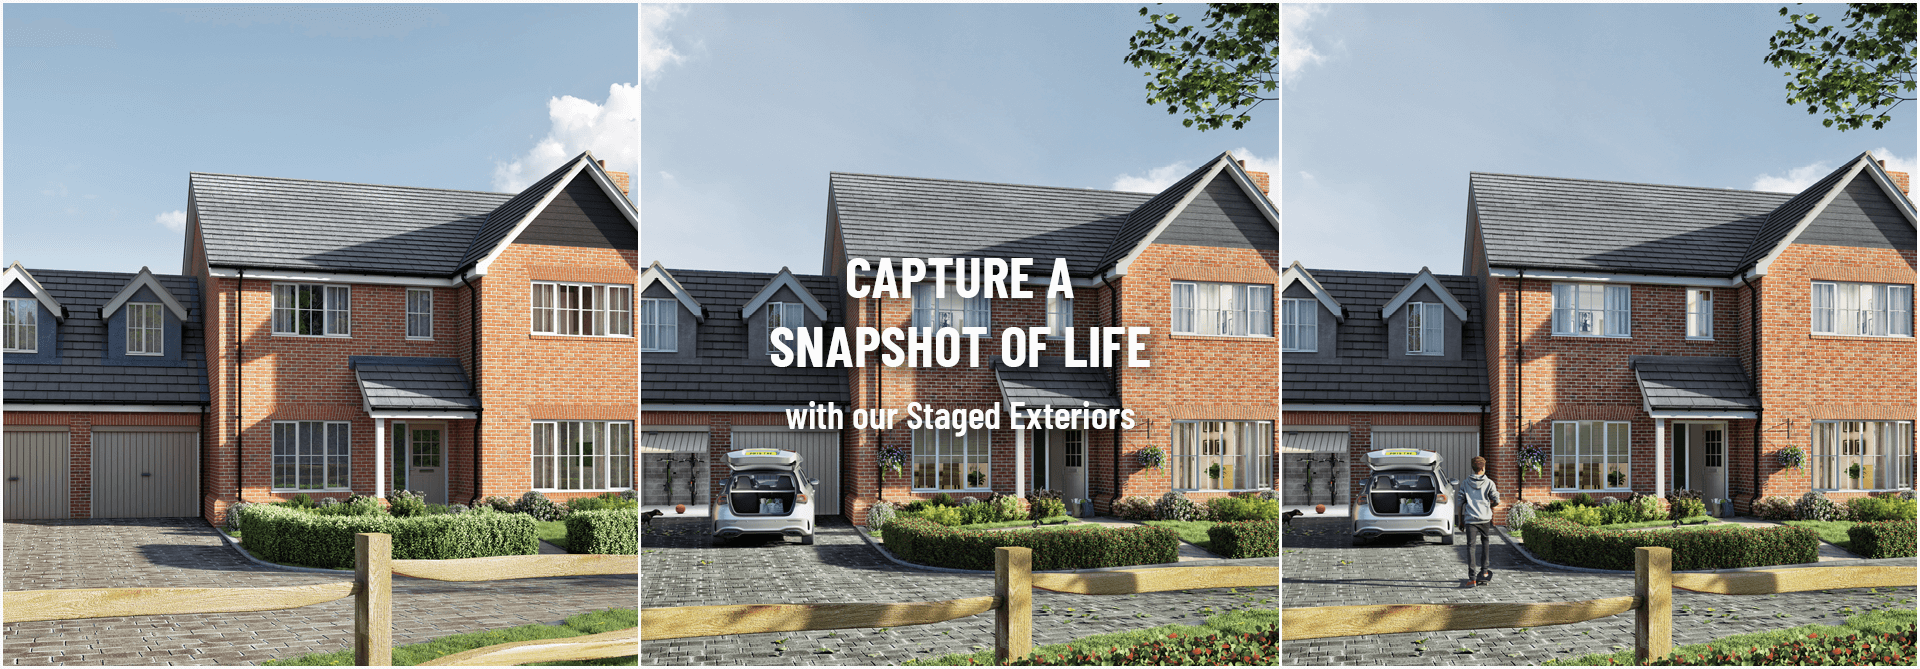 Staged Exteriors Image Foundry